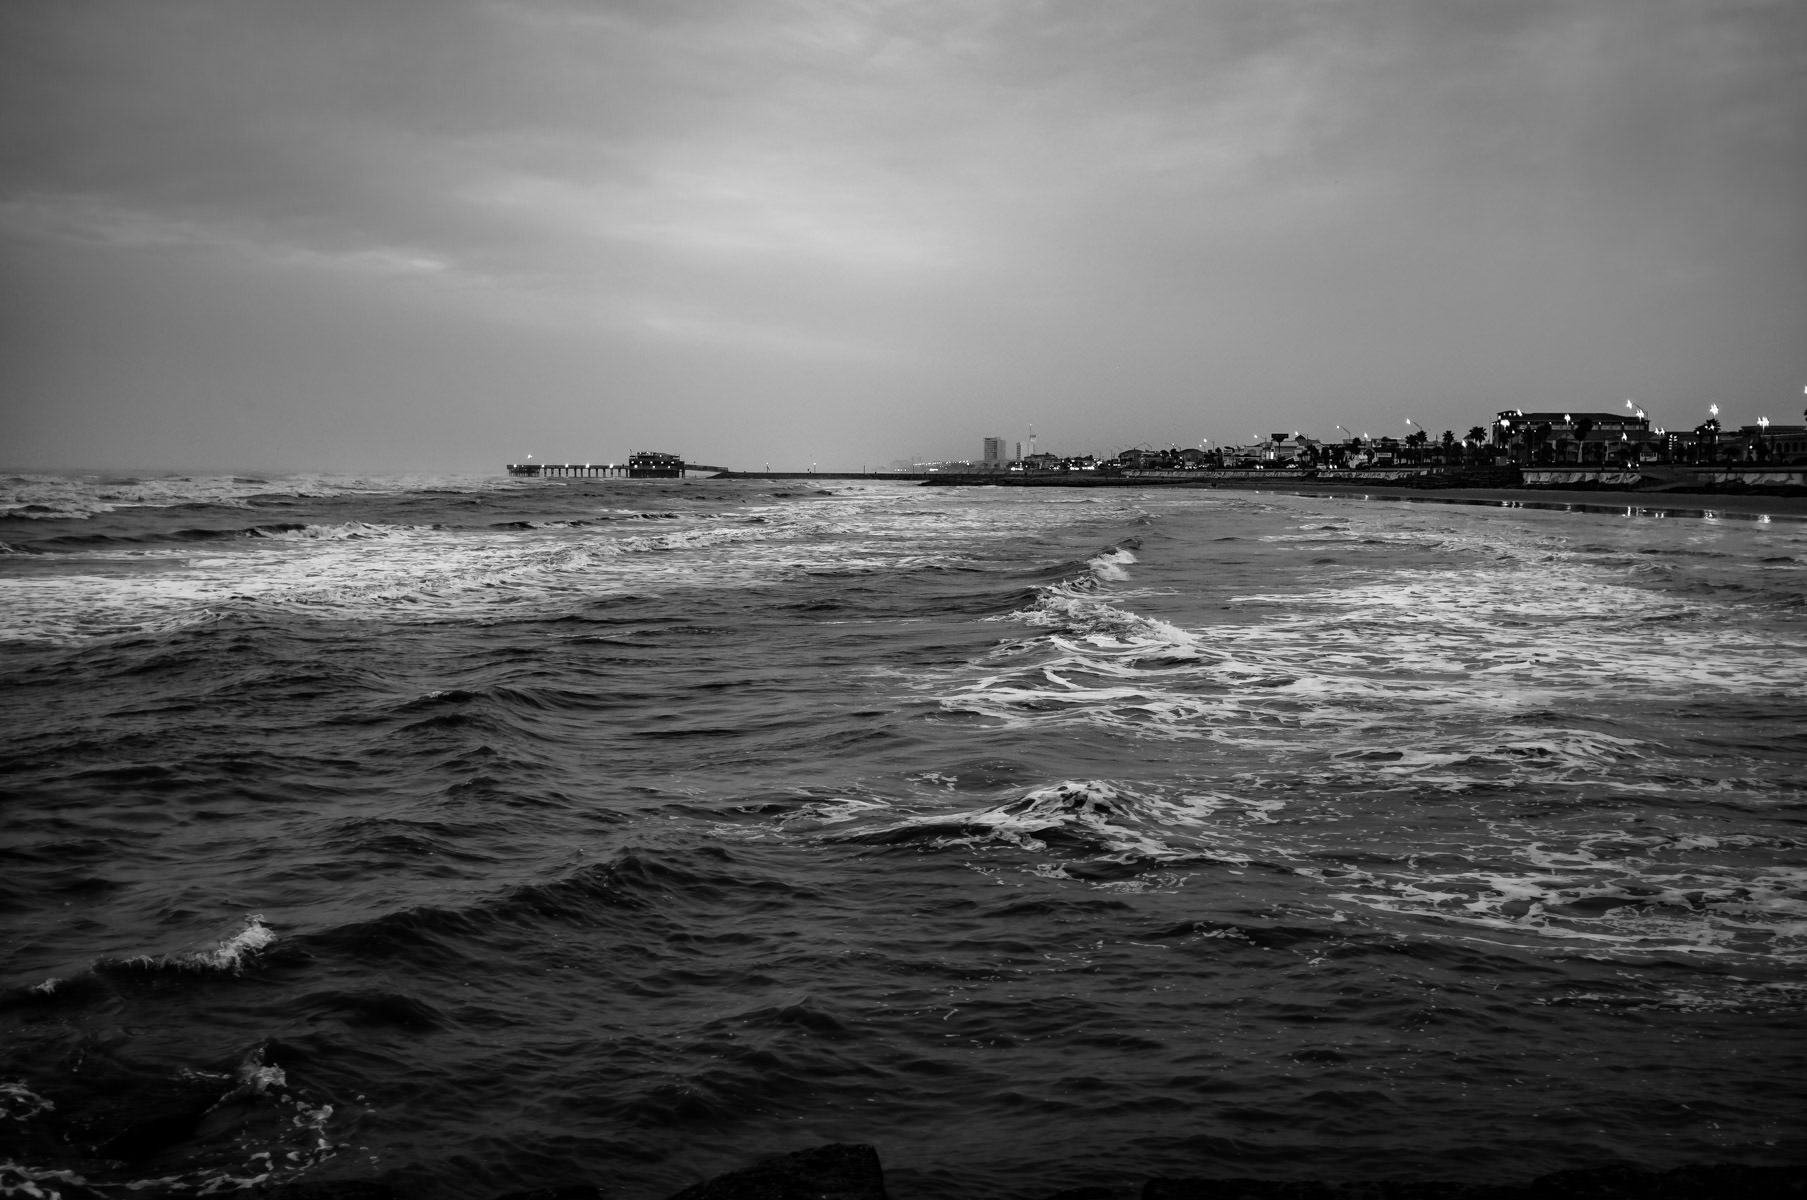 The Gulf of Mexico churns in the early dawn hours just off the coast of Galveston, Texas.